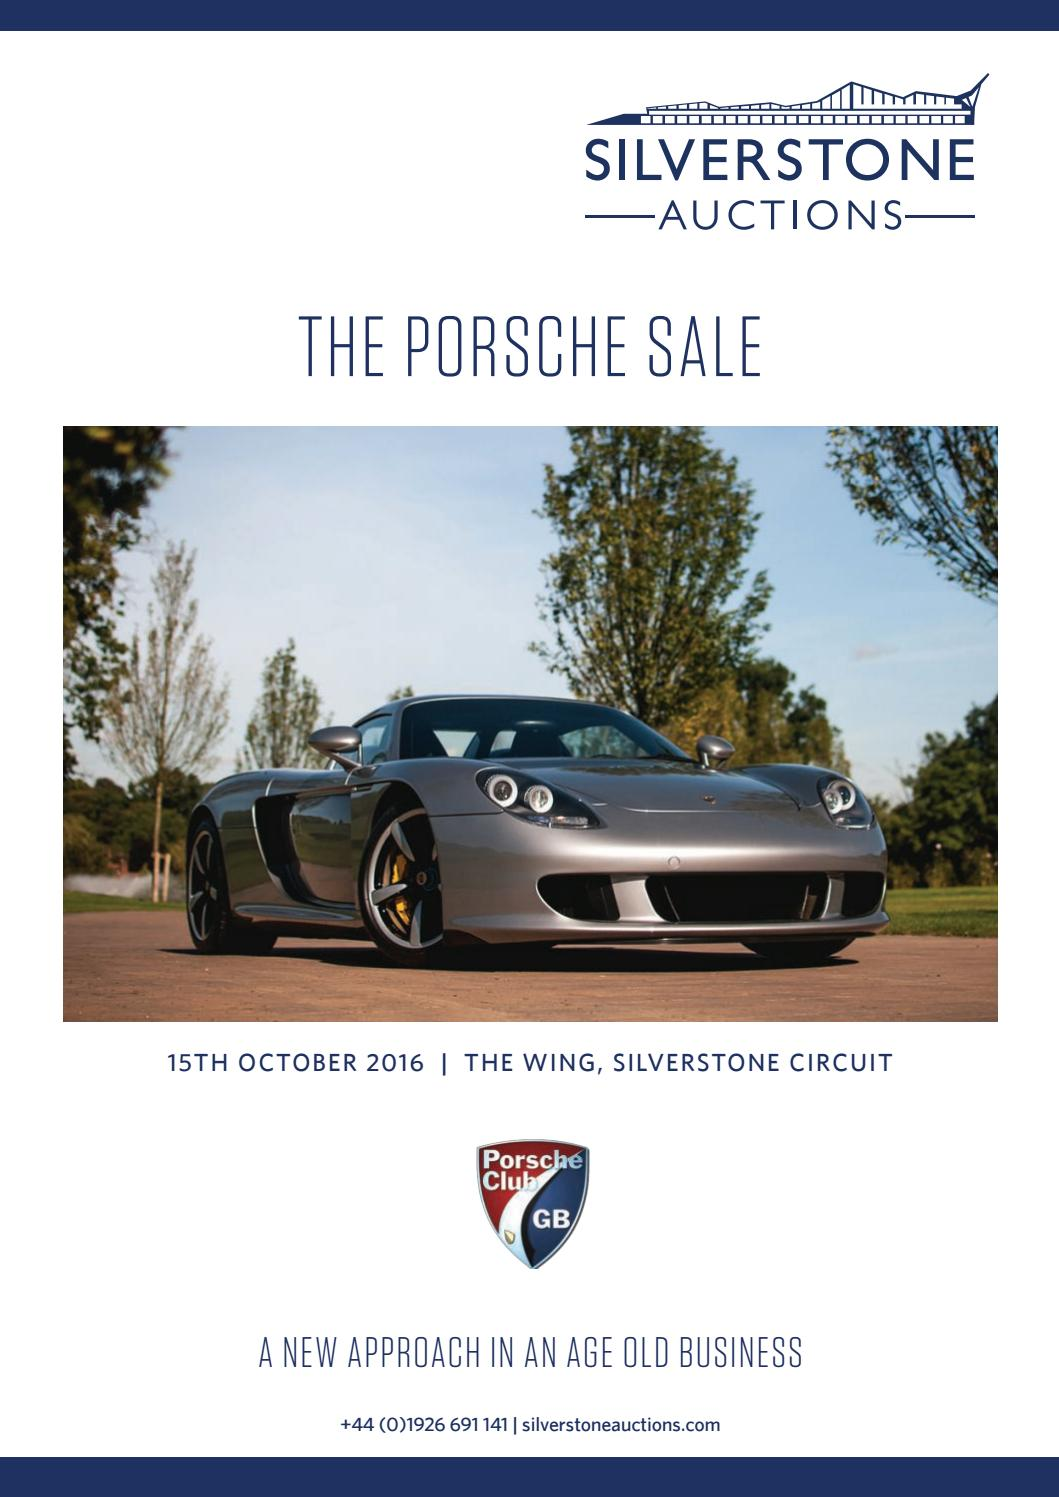 hight resolution of silverstone auctions the porsche sale 15th october 2016 by silverstone auctions issuu